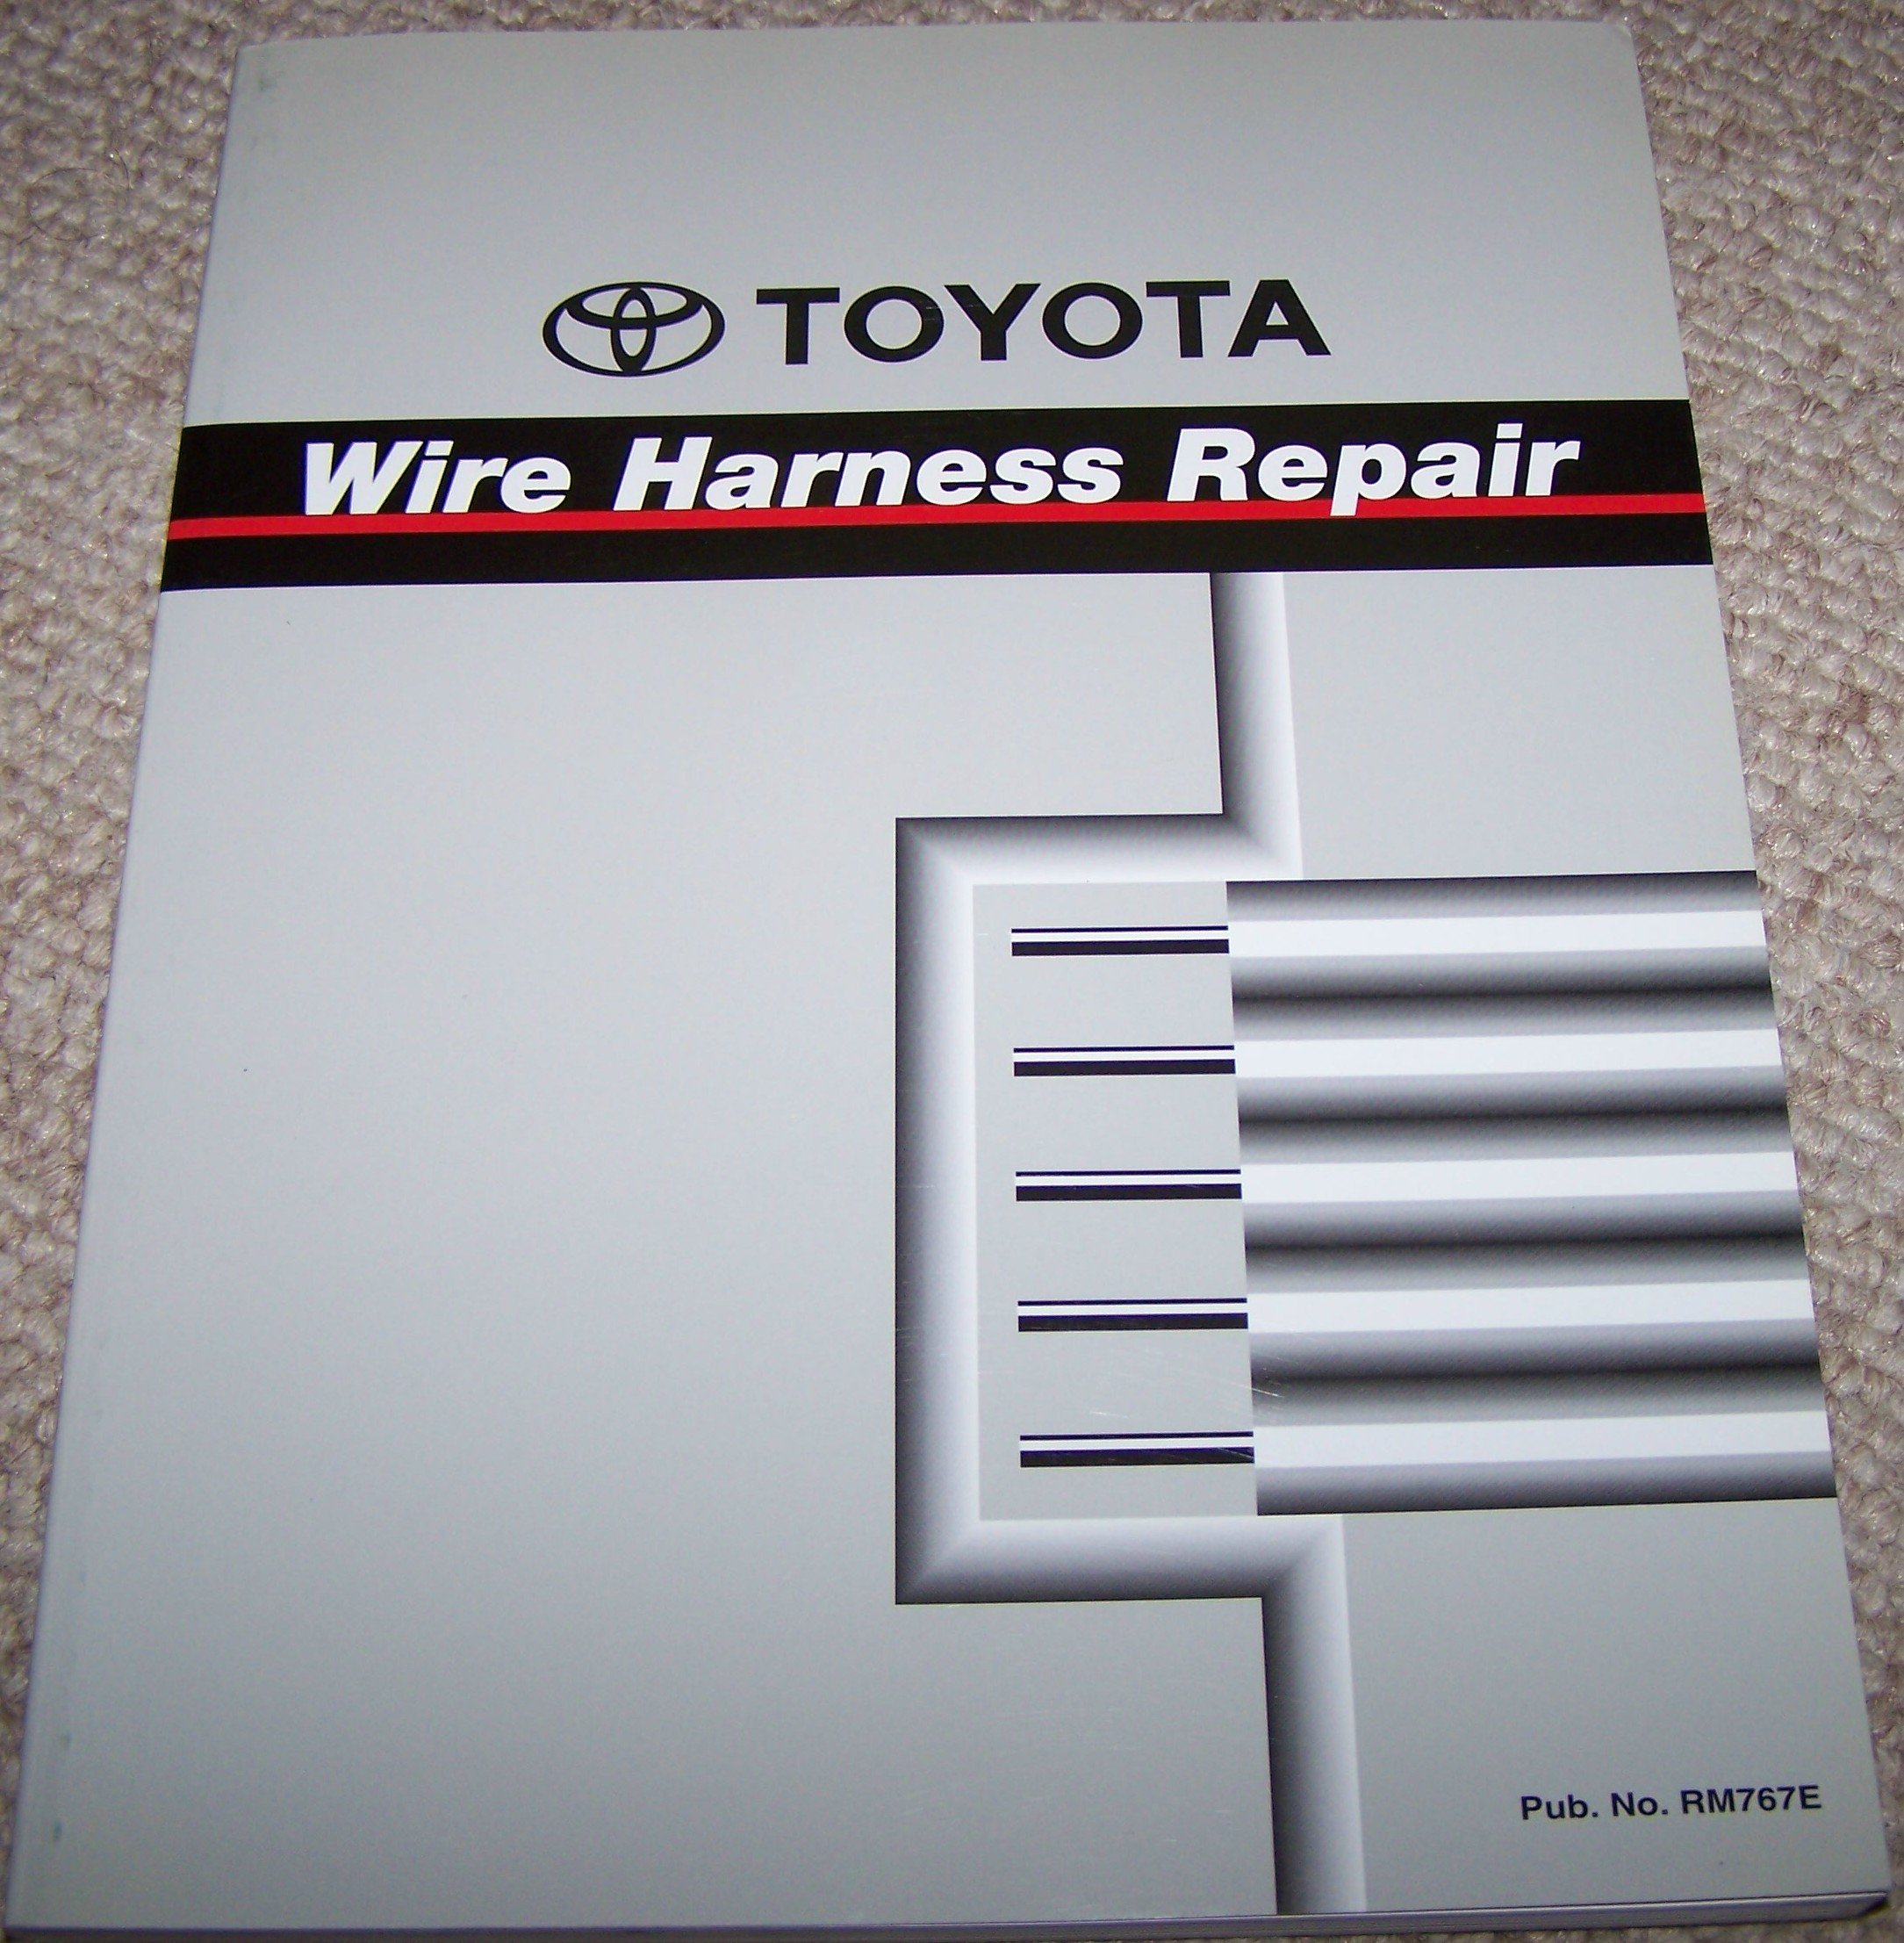 Toyota Wire Harness Repair Wiring Manual (RM767E): Toyota Motor Corp:  Amazon.com: Books